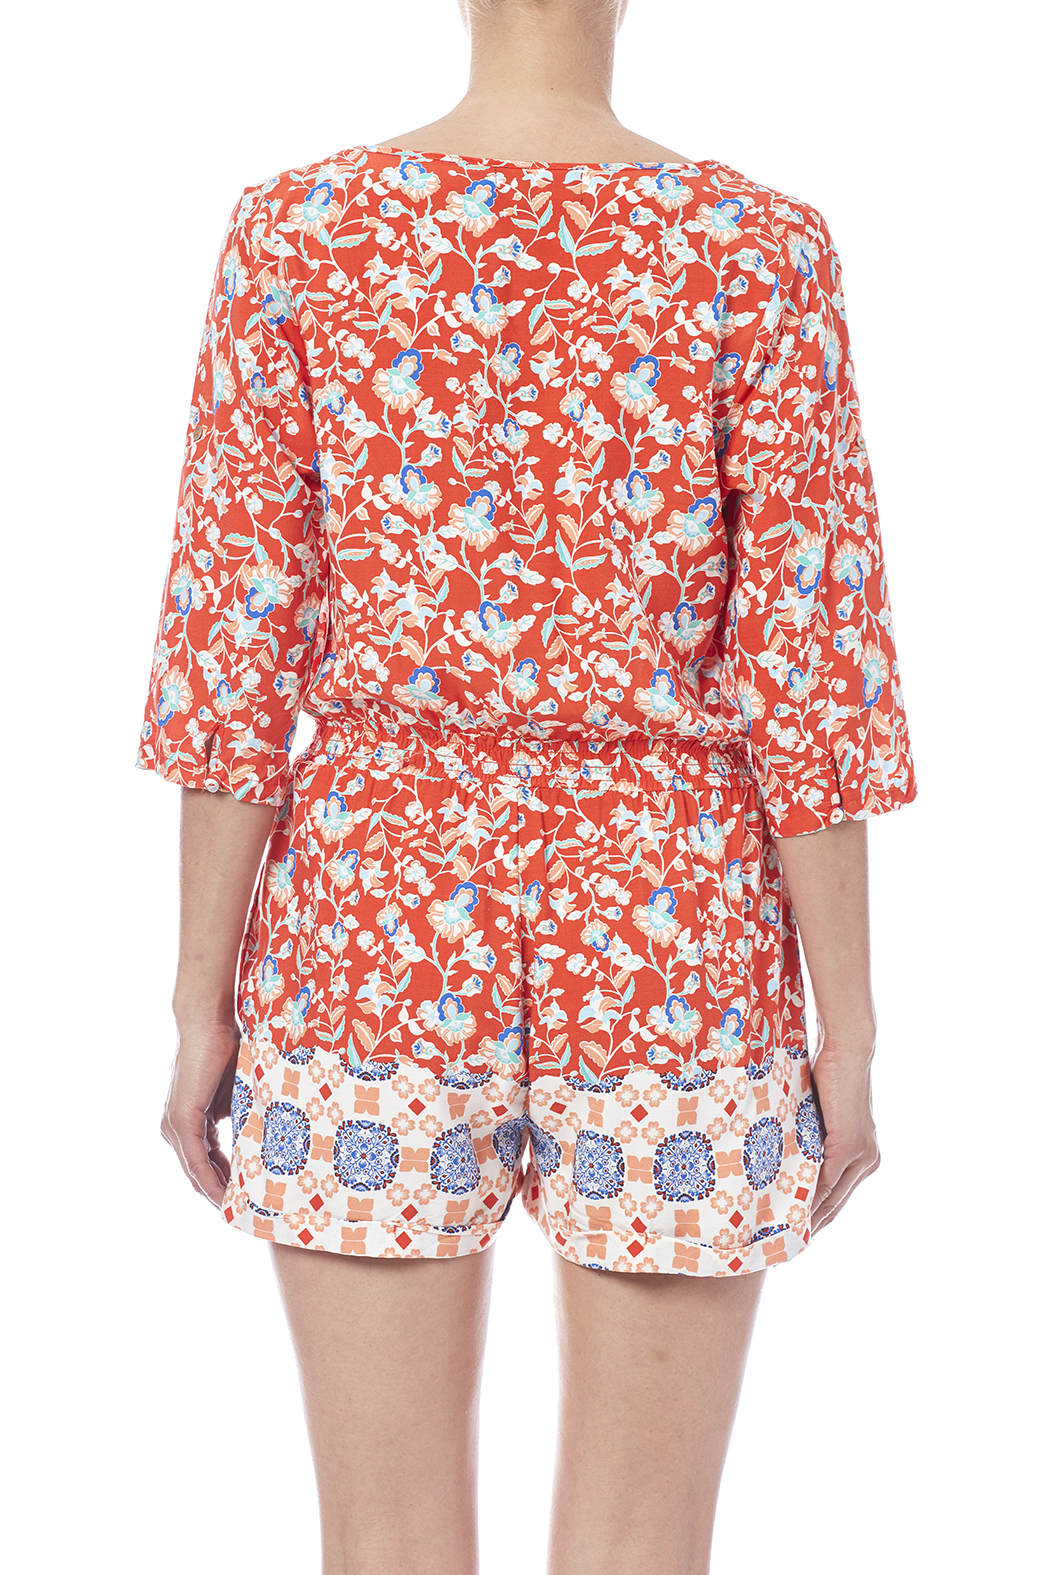 MinkPink Neighborhood Floral Romper - Back Cropped Image